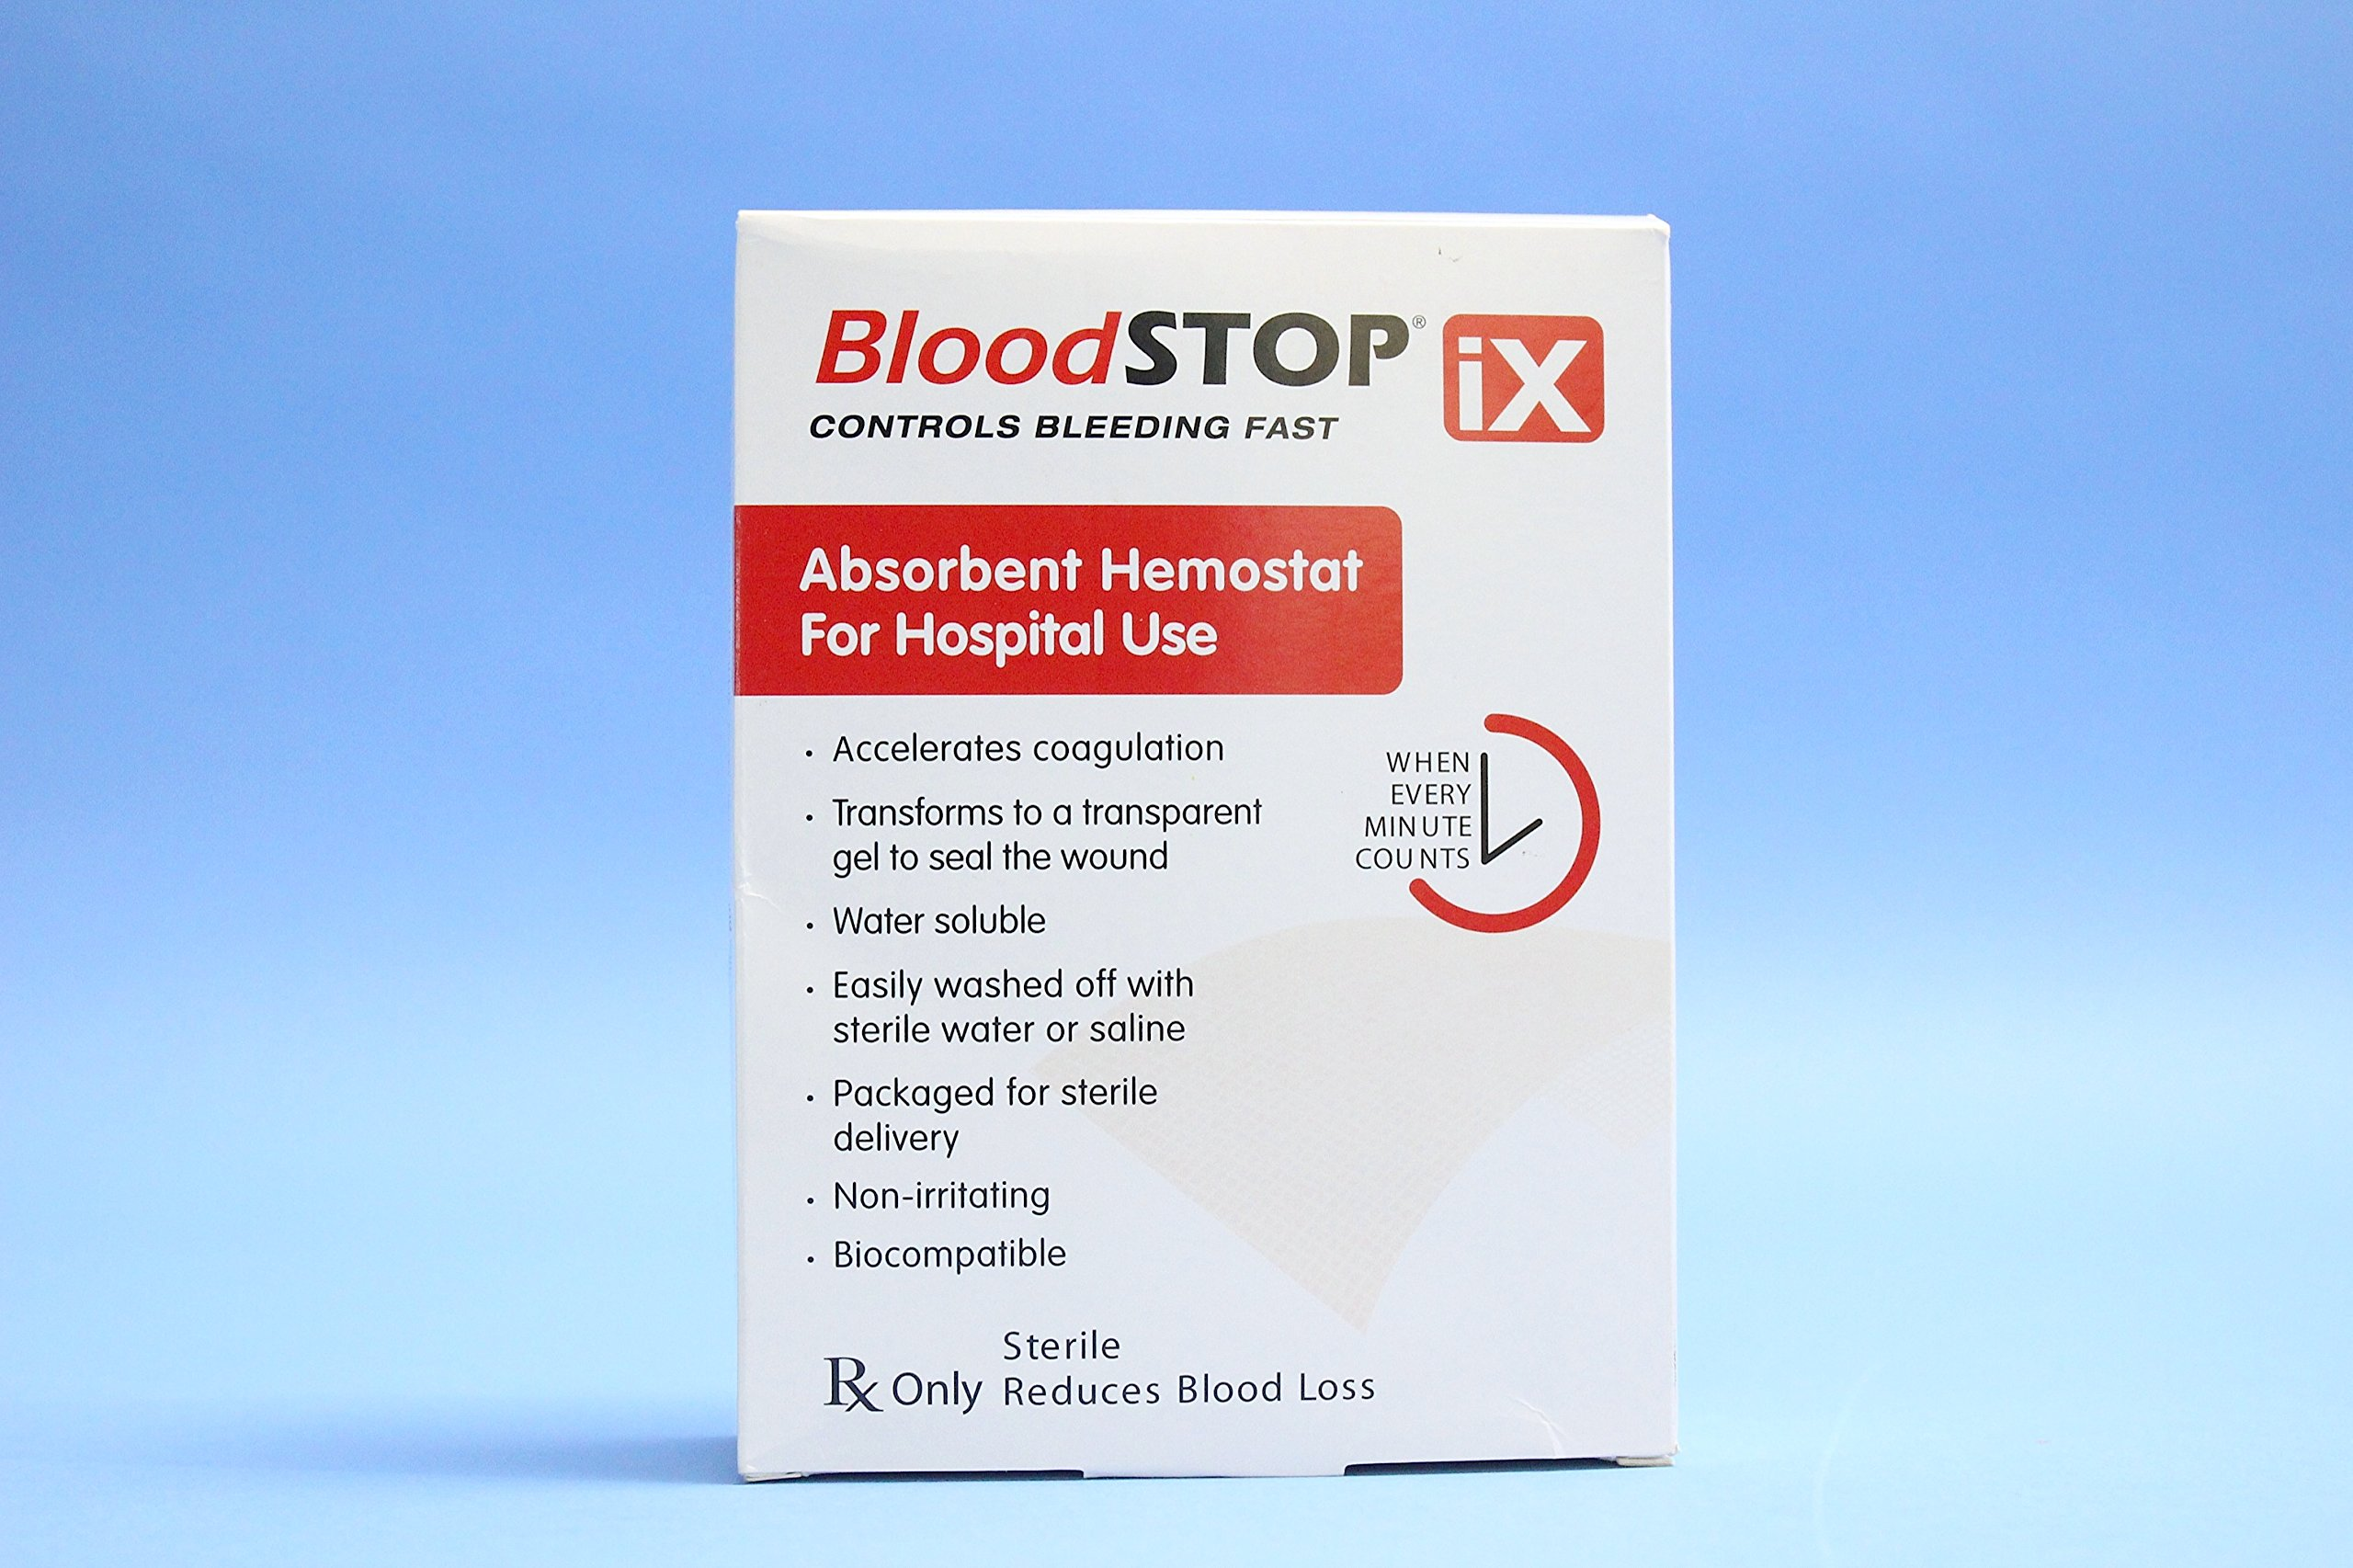 Blood Stop IX Absorbent Hemostat 2''x14'' (Box of 12) by LifeScience PLus